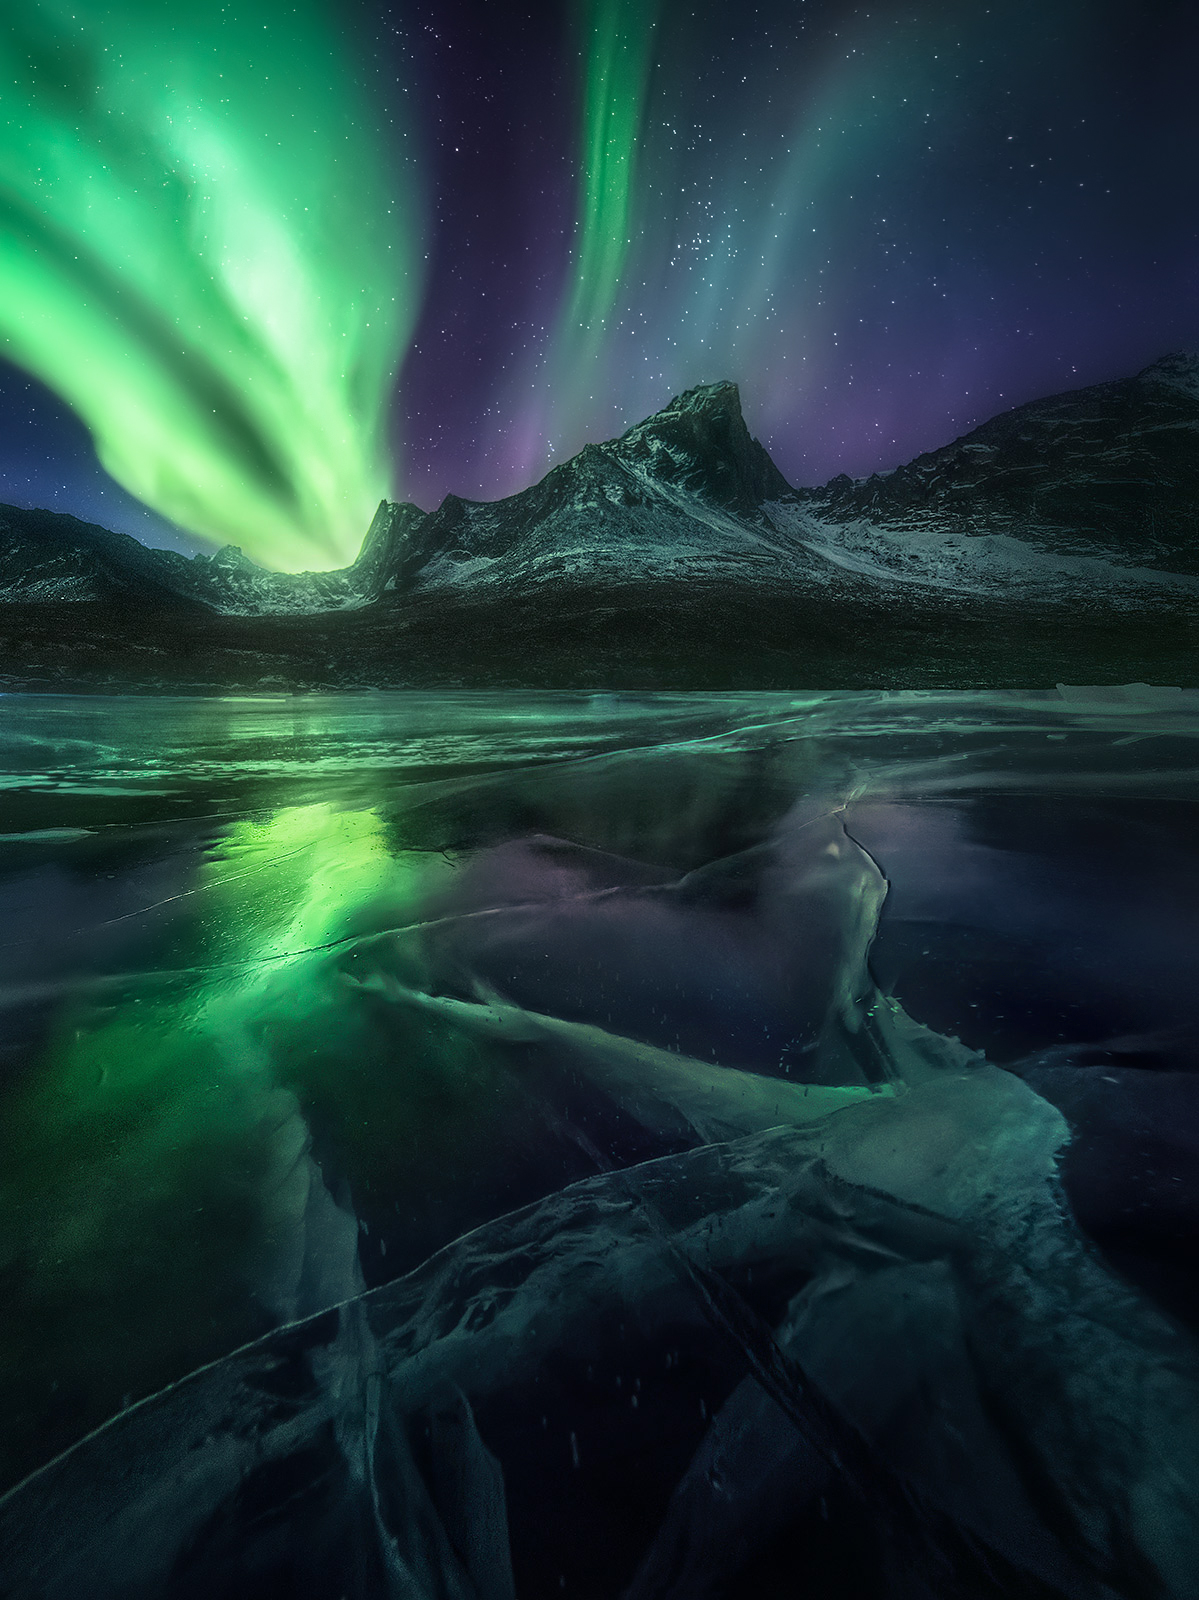 aurora, ice, frozen, lake, reflection, Yukon, Canada, arctic, photo